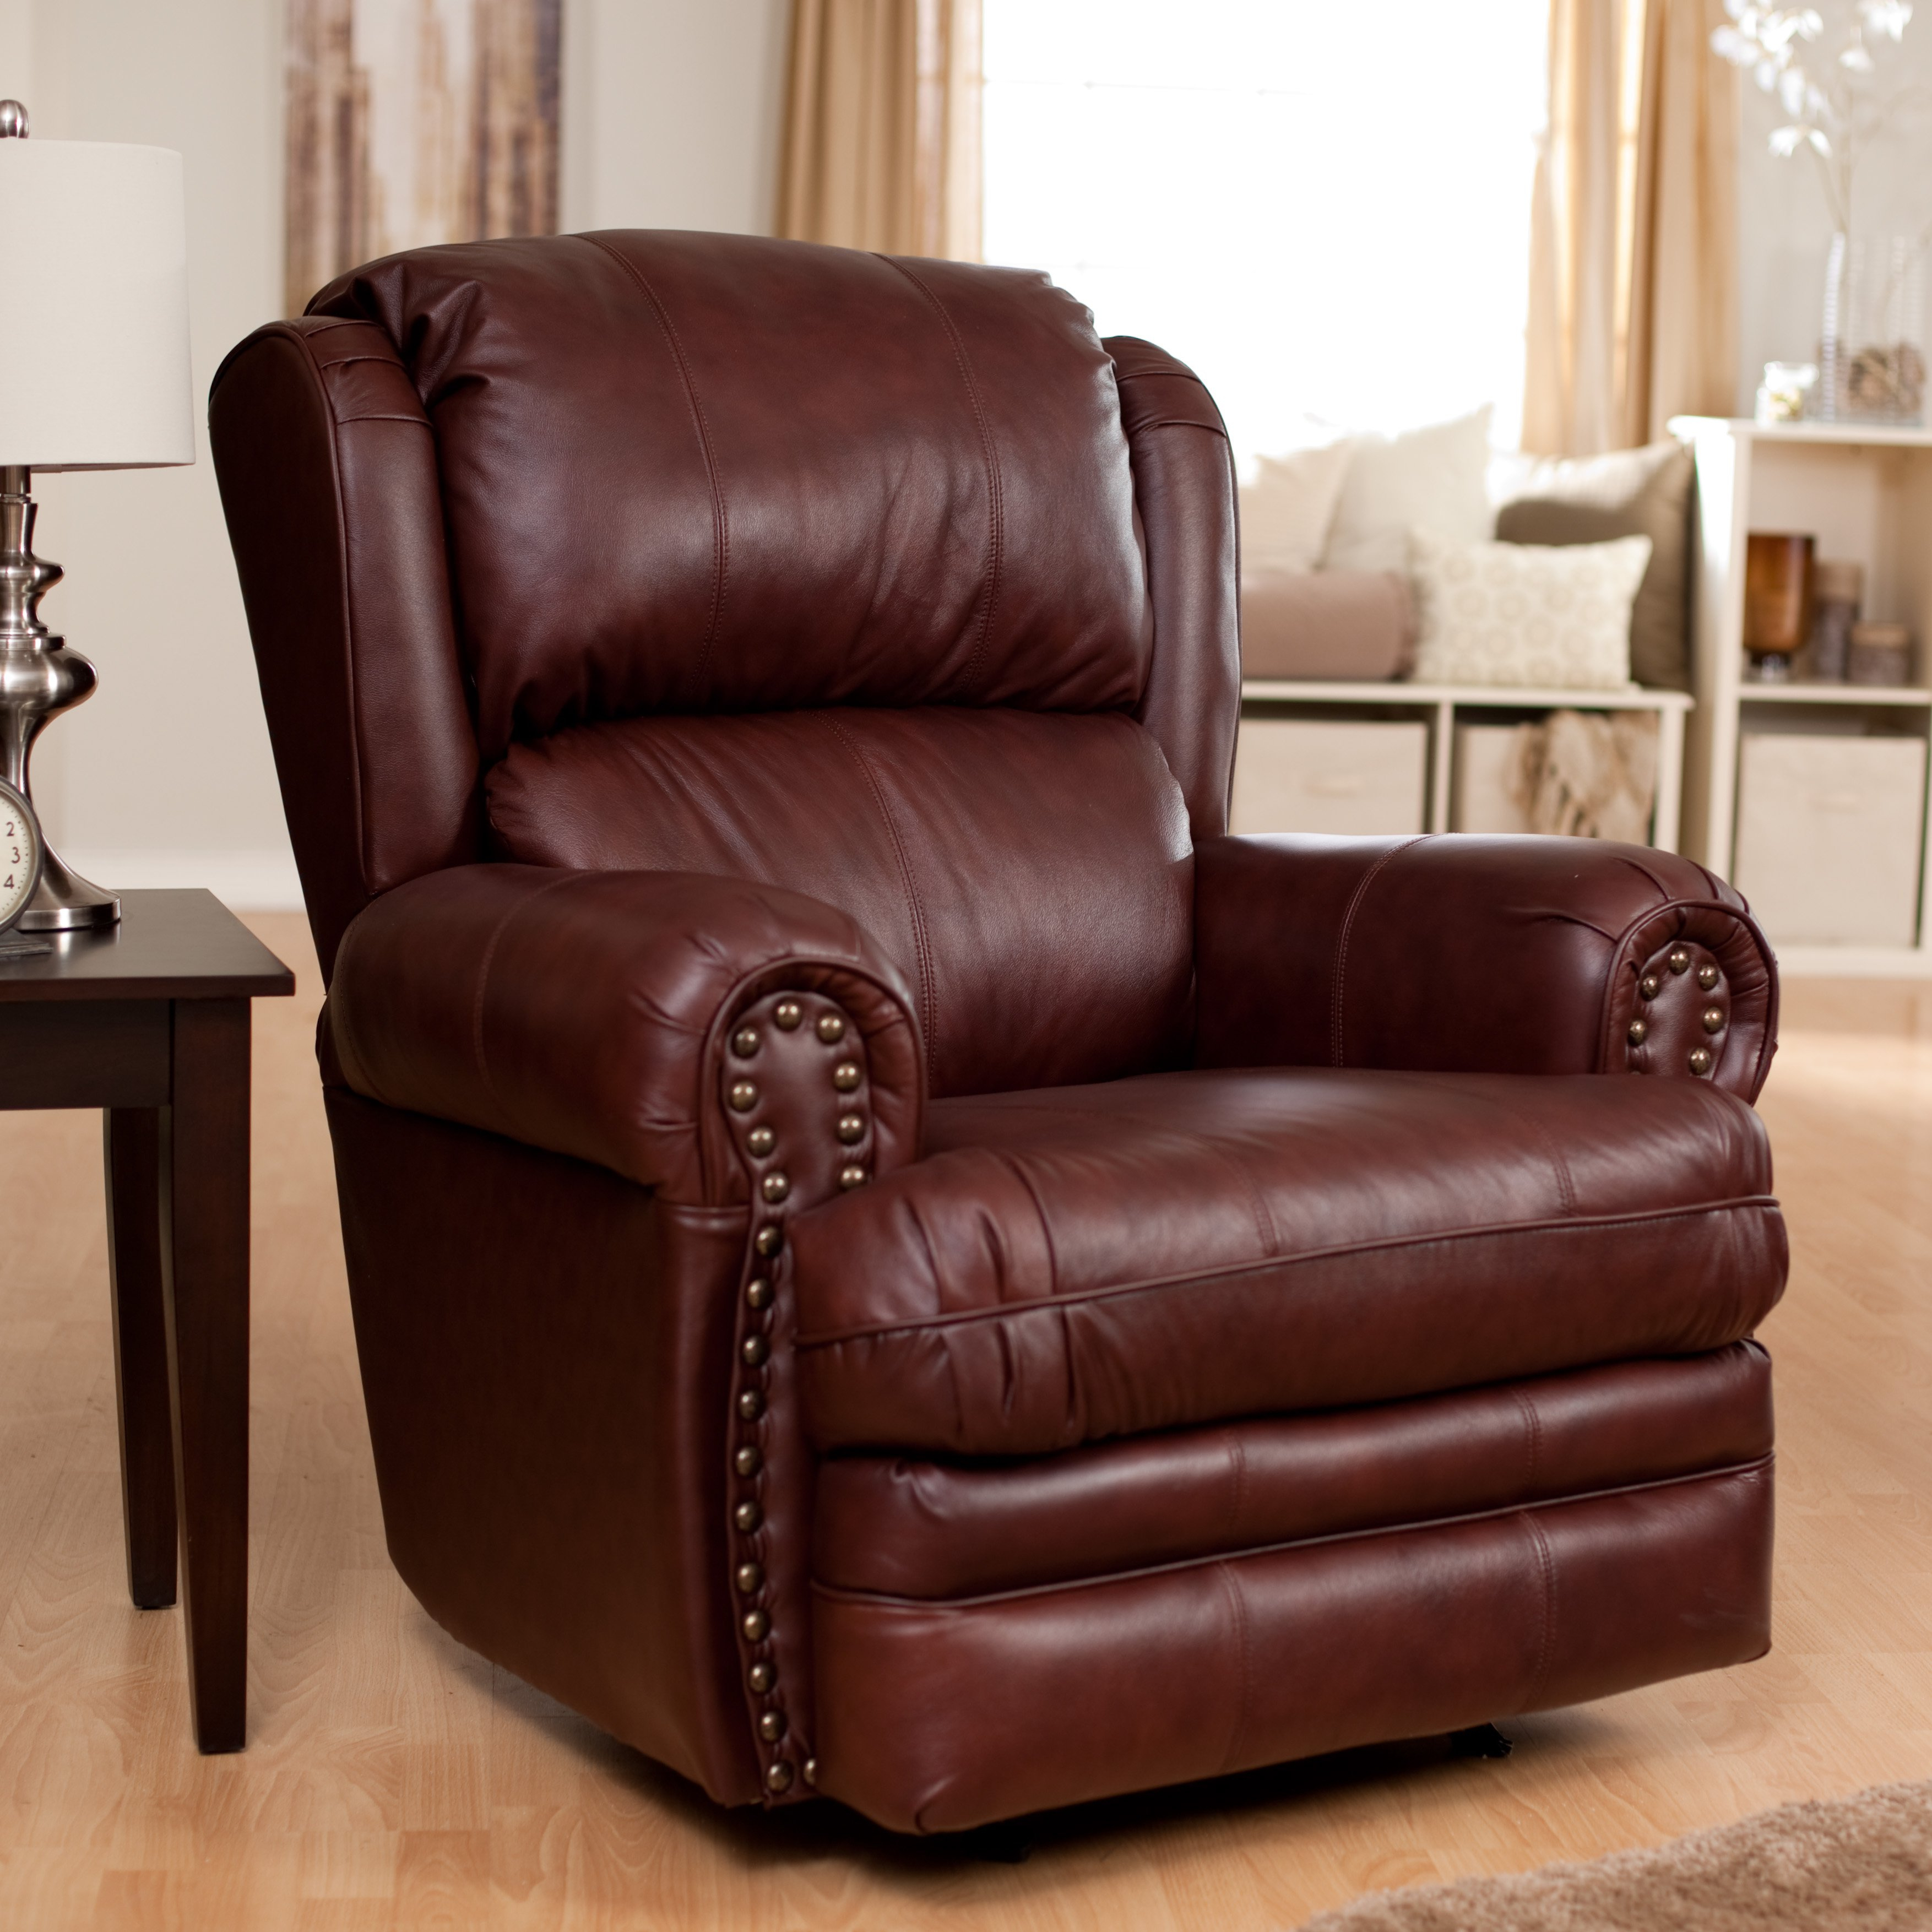 Furniture: Surprising Simmons Recliners For Contemporary Living Room Inside Rogan Leather Cafe Latte Swivel Glider Recliners (Image 8 of 25)